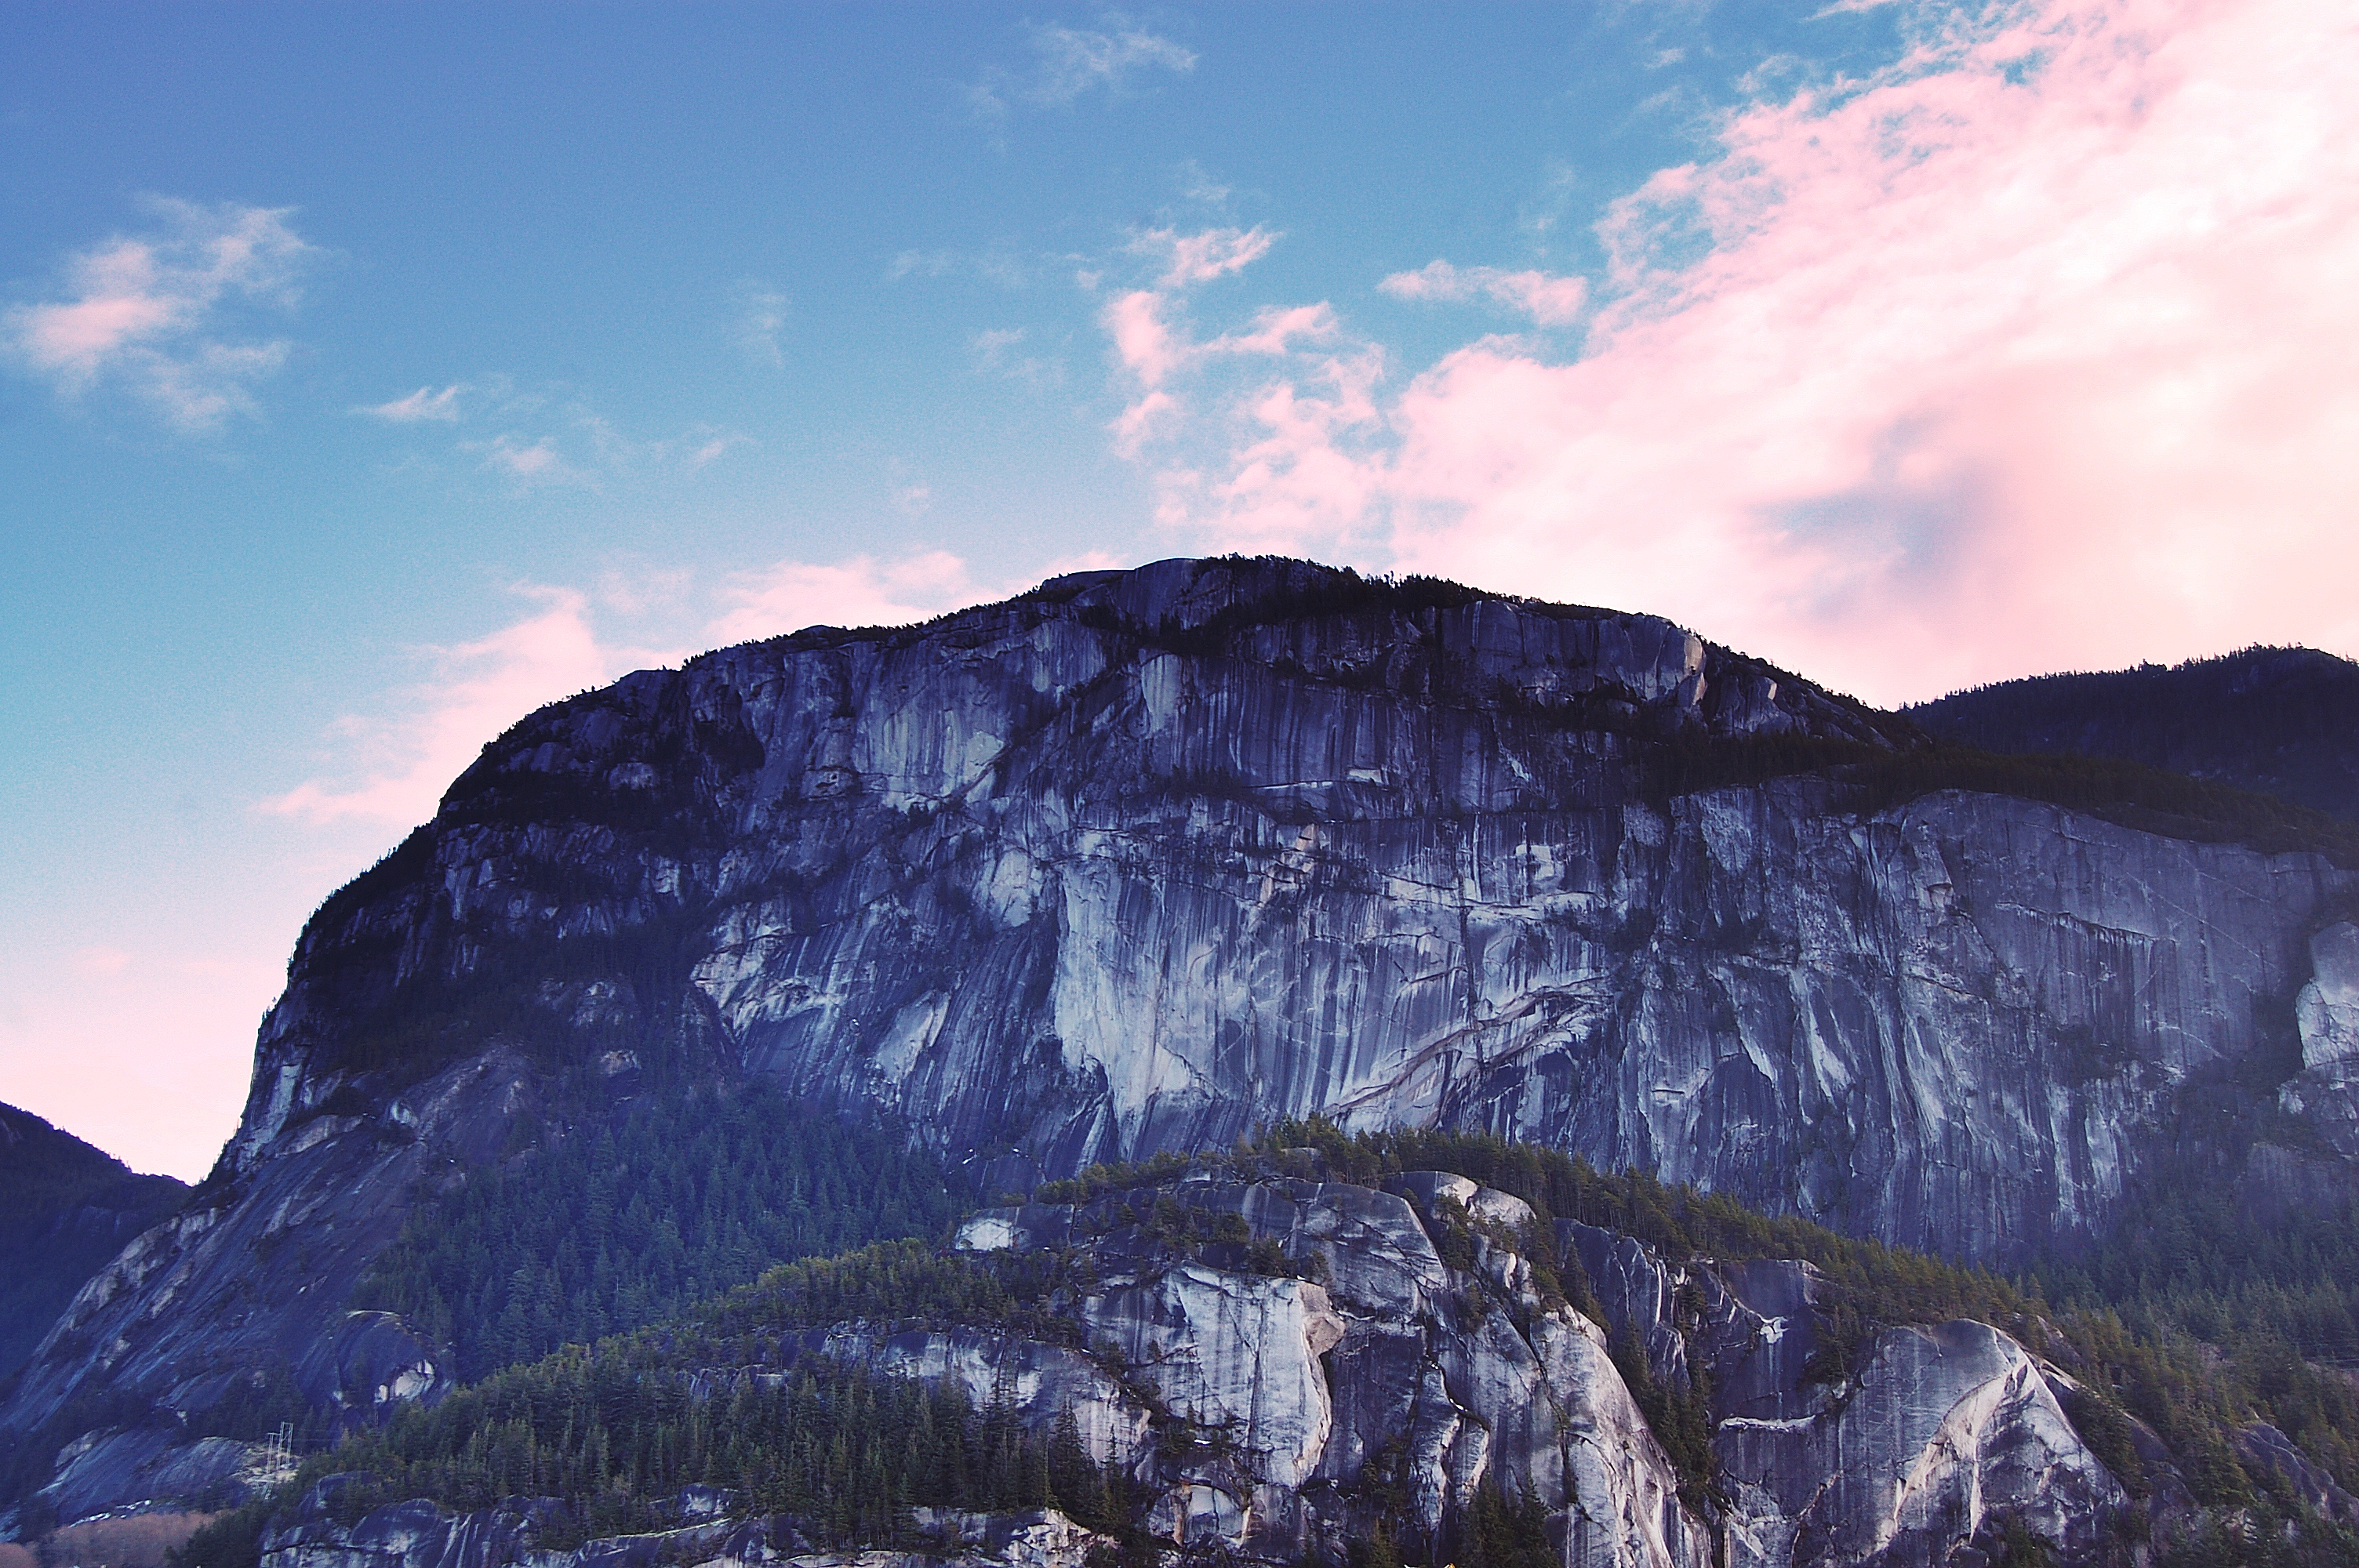 yosemite desktop wallpaper for canadians: the chief in squamish, bc